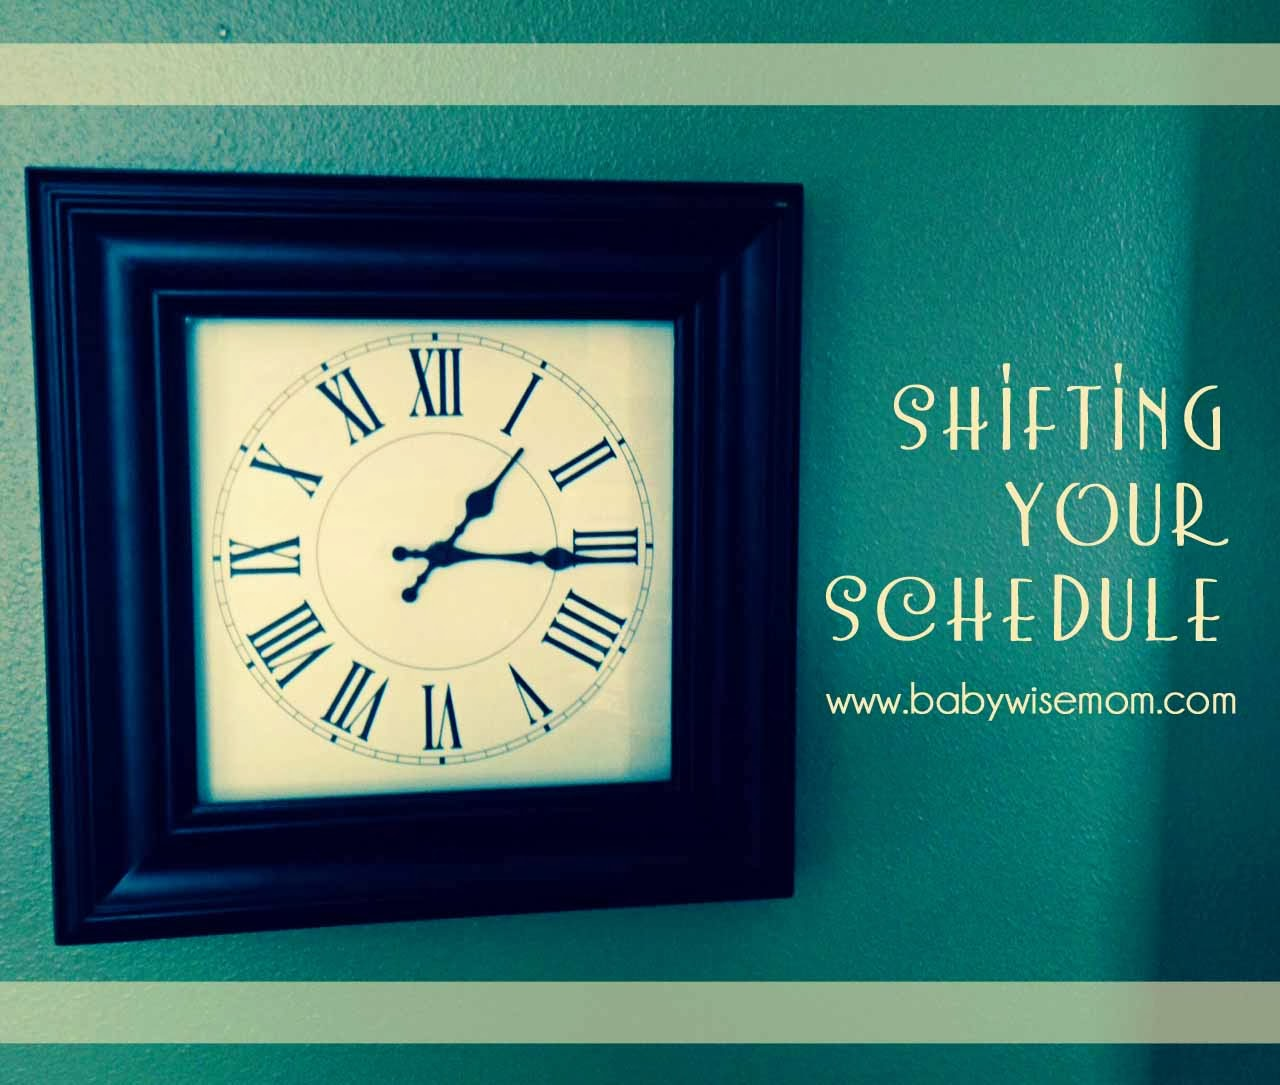 Shifting your schedule time change time zones etc chronicles shifting your schedule time change time zones etc sciox Image collections